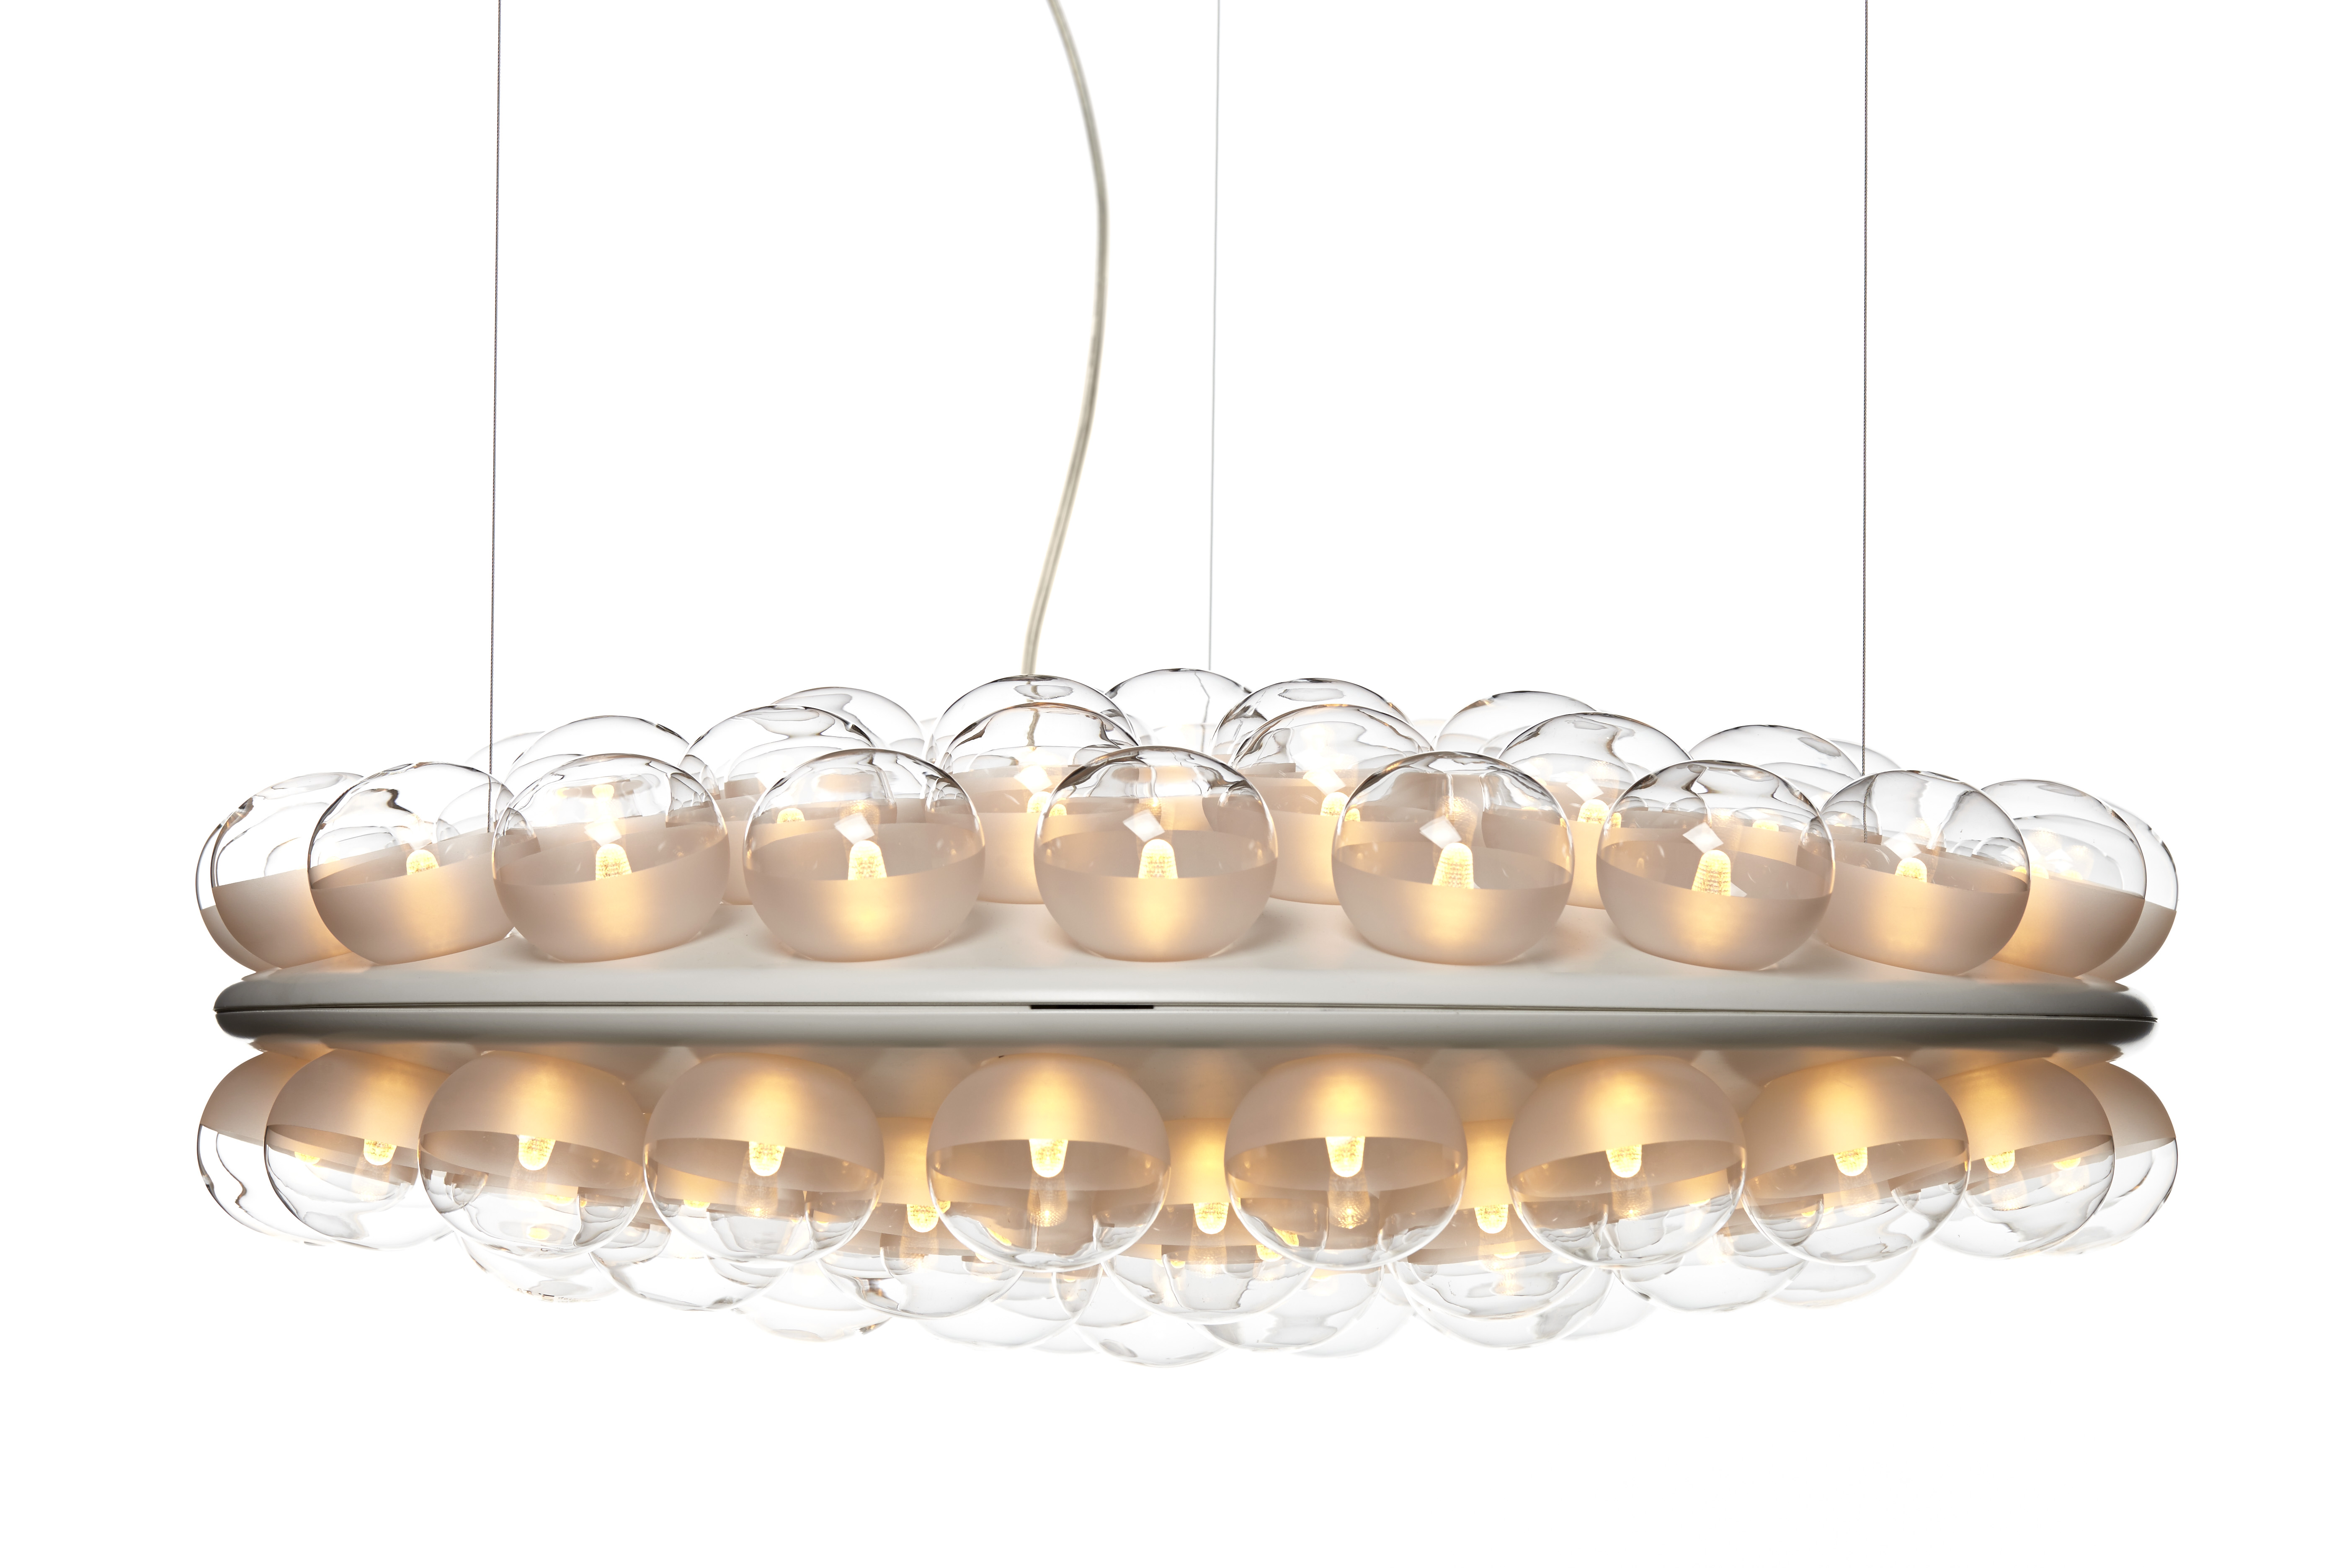 prop-light-round-double-on-178-300dpi-moooi